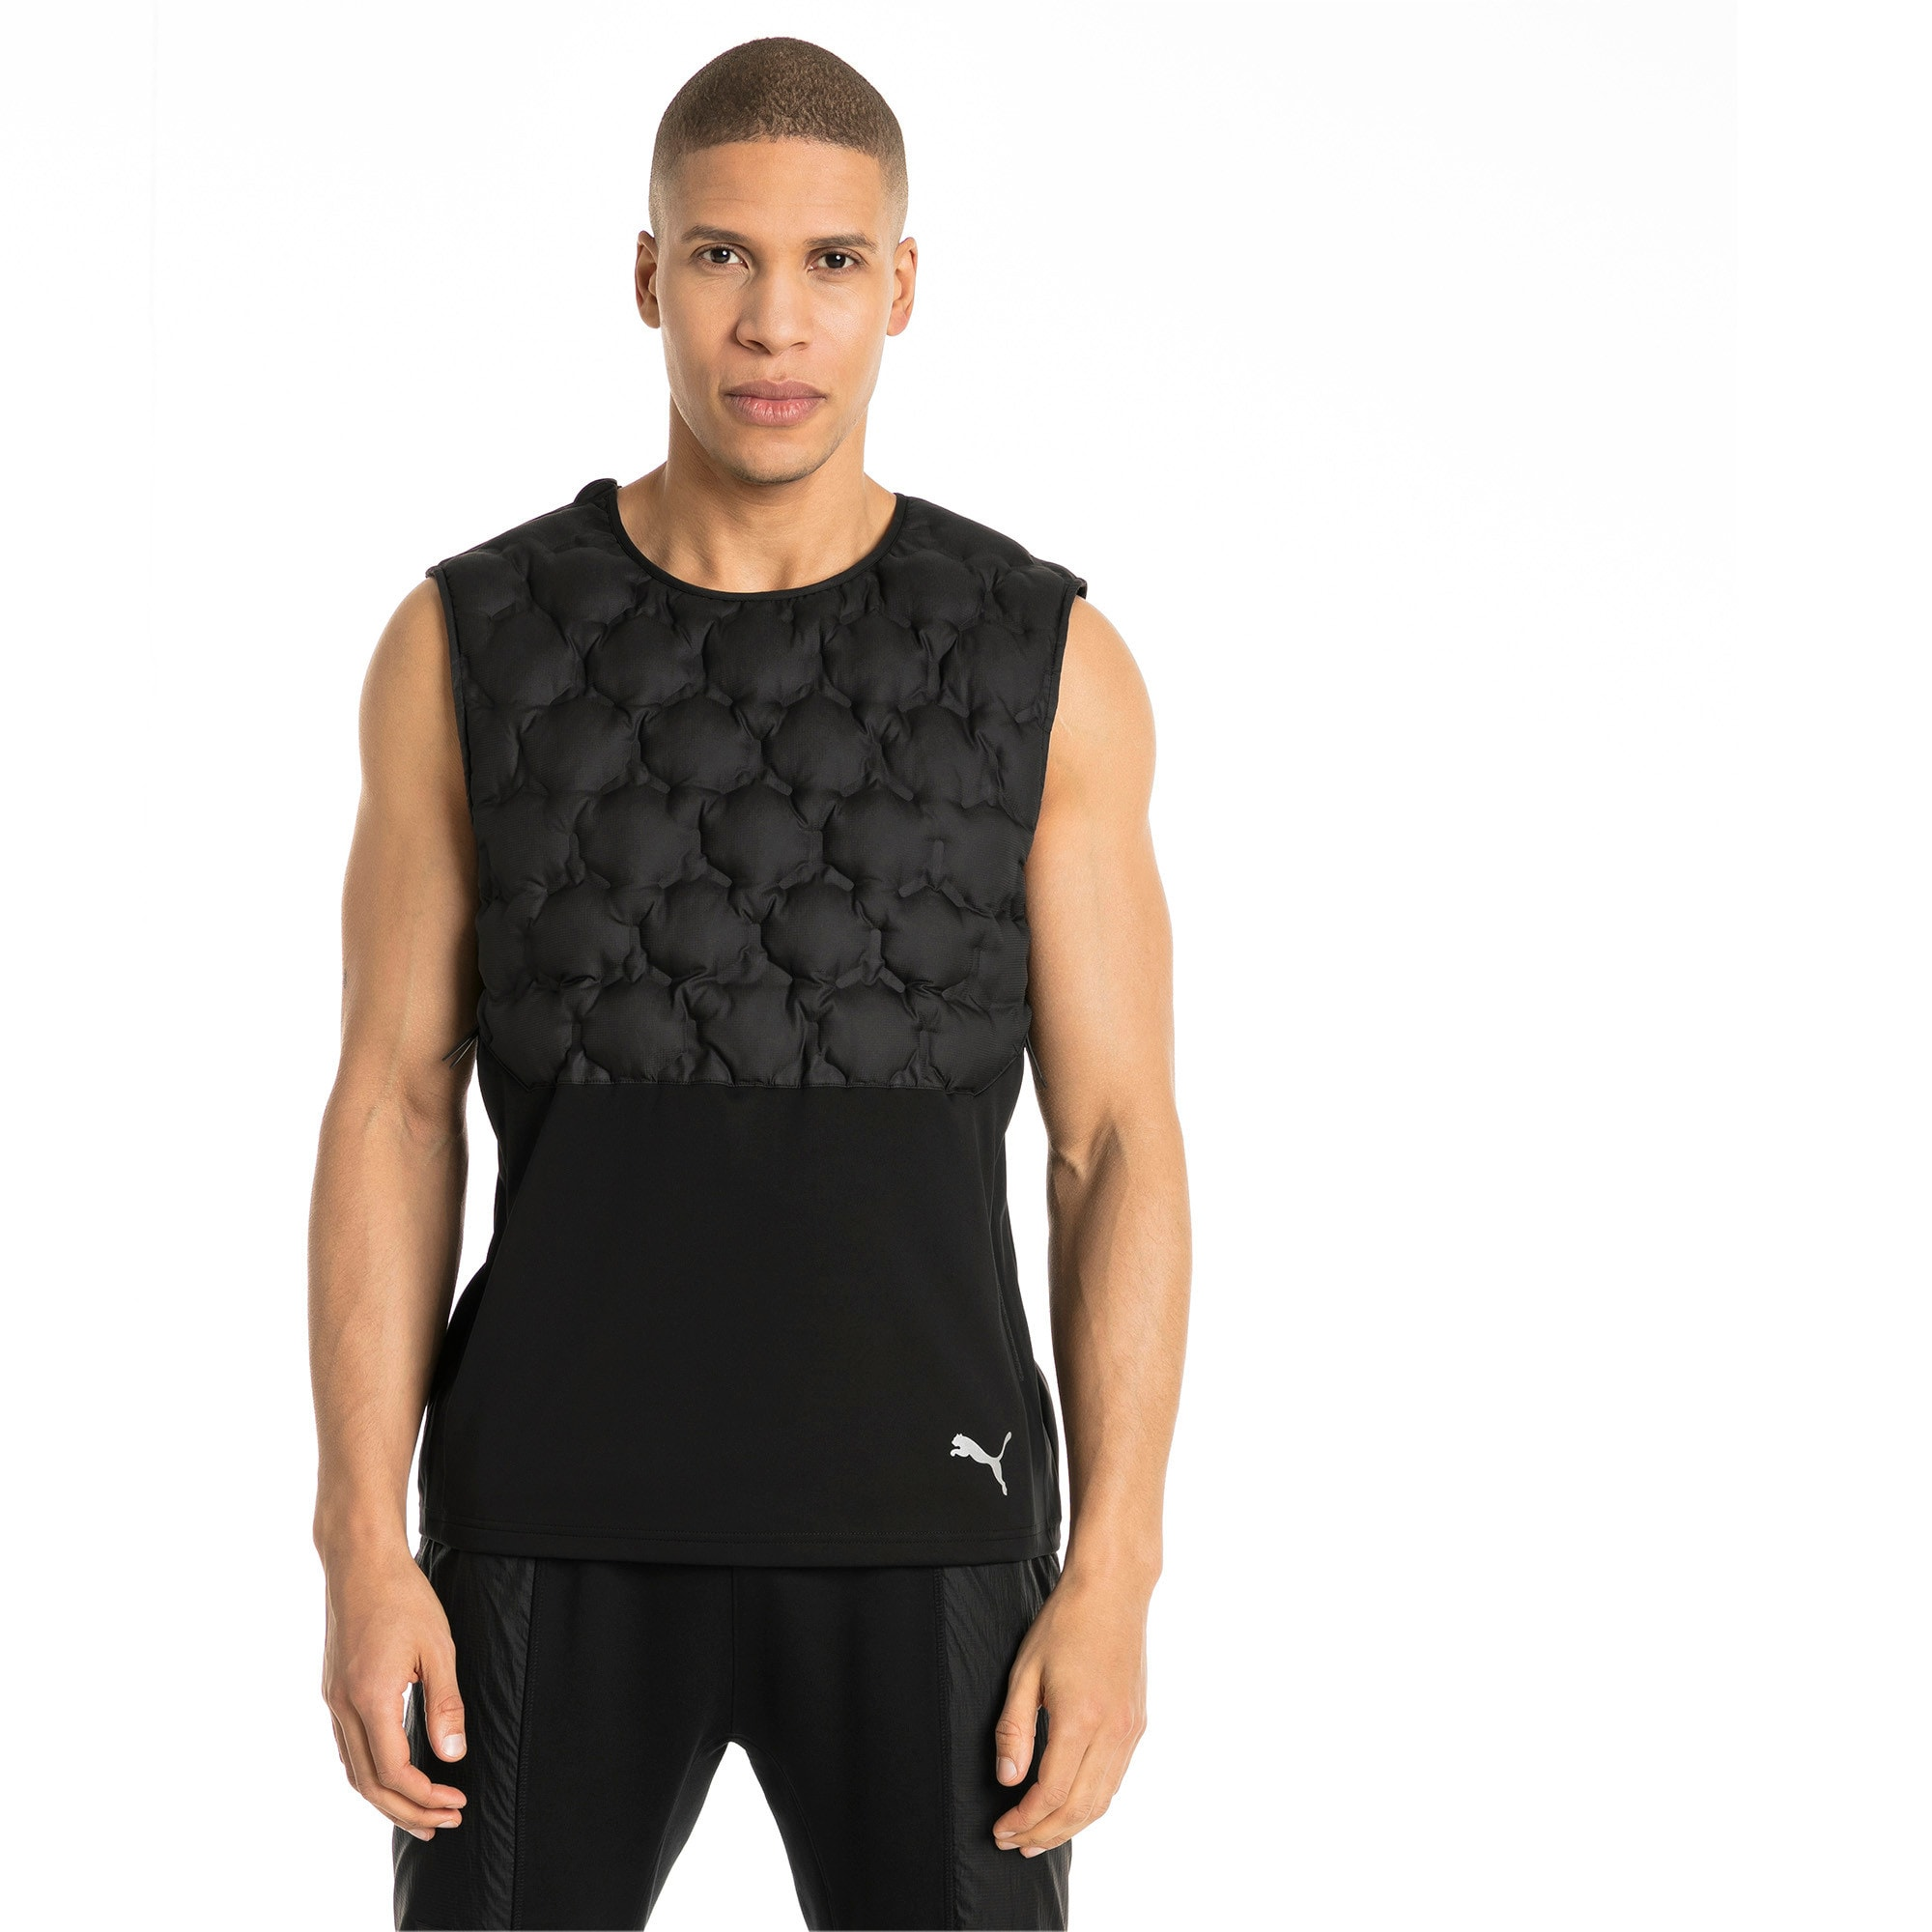 Thumbnail 1 of NeverRunBack Men's Protect Vest, Puma Black, medium-IND